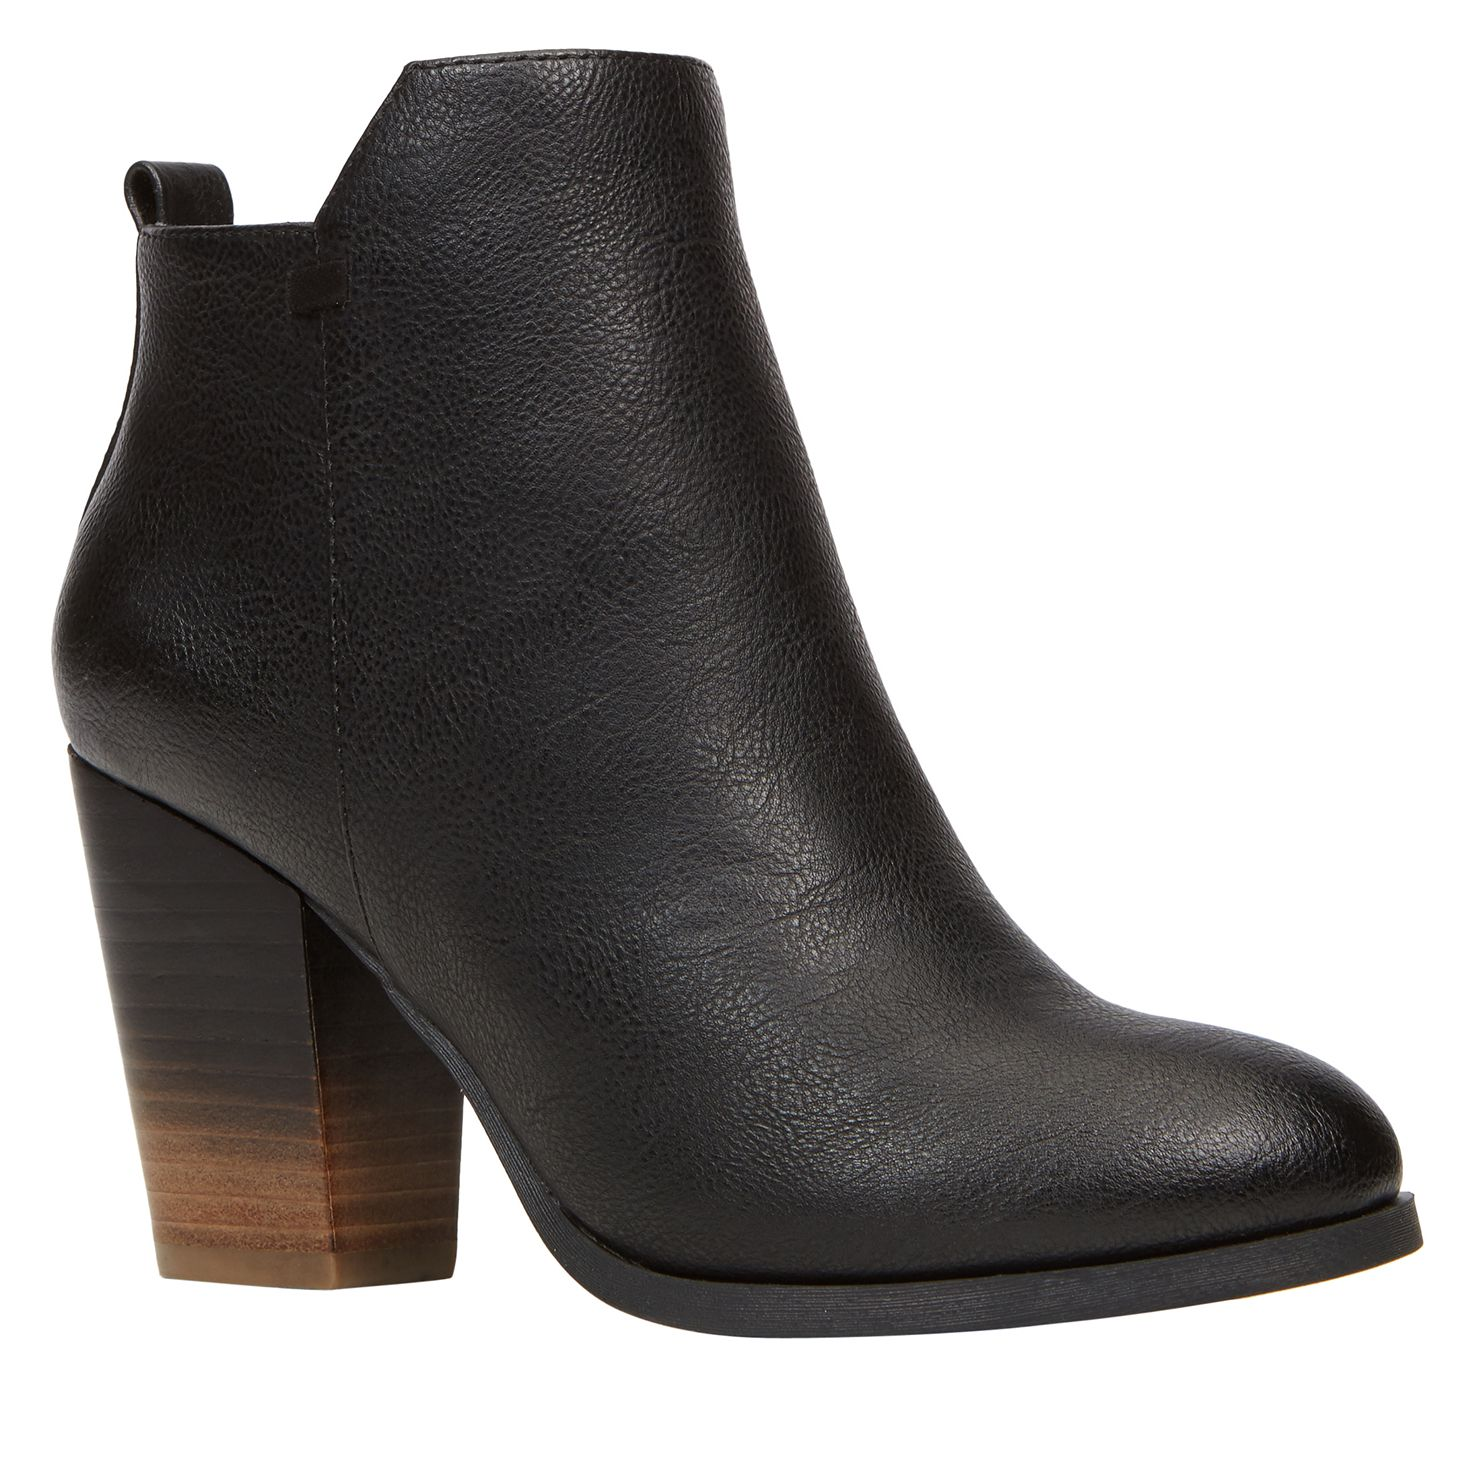 ALEARI | Ankle Boots for Women | Call